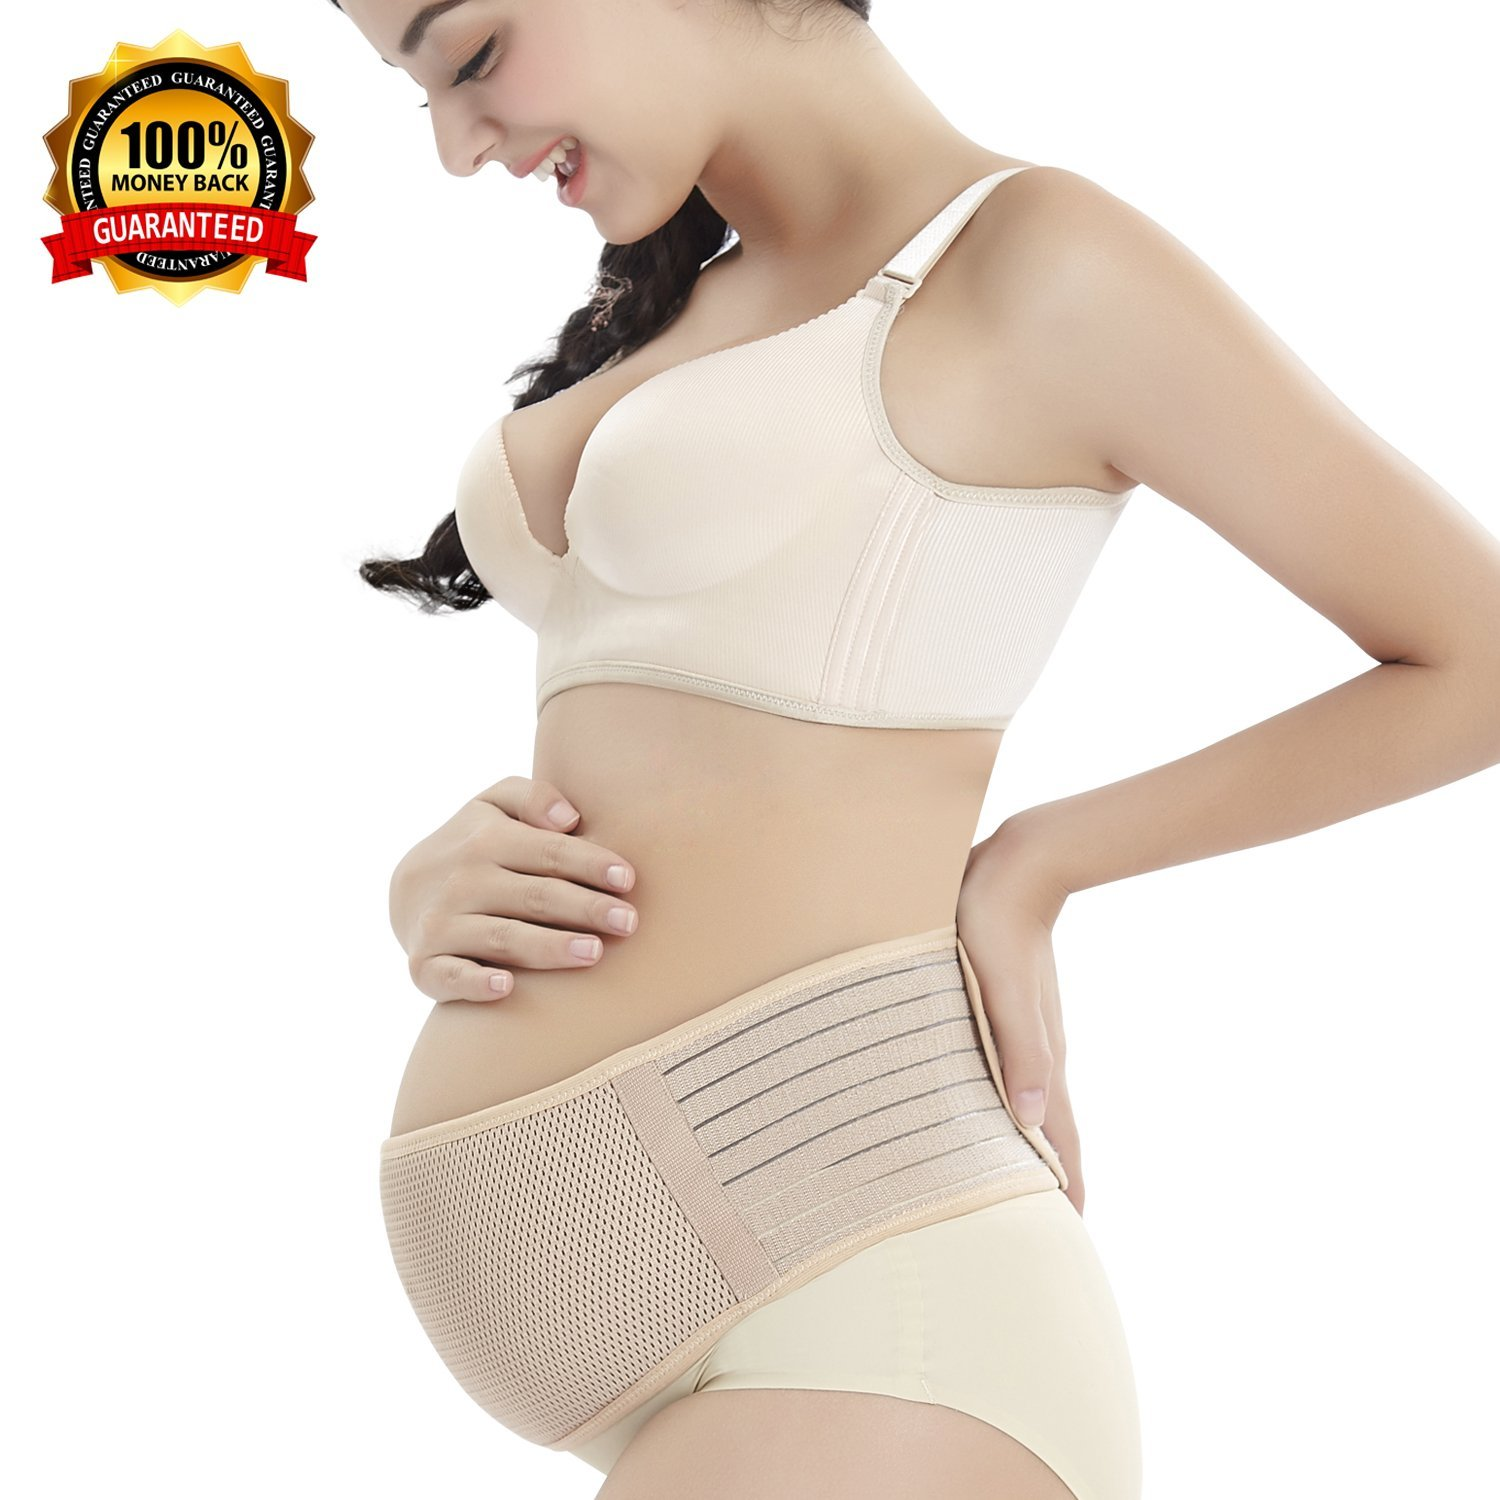 Belly Band for Pregnancy Maternity Belt Pregnancy Belt Pregnancy Support Belt Bands Maternity Support Belt Pregnancy Belly Support Band for Pregnant Women Maternity Supports